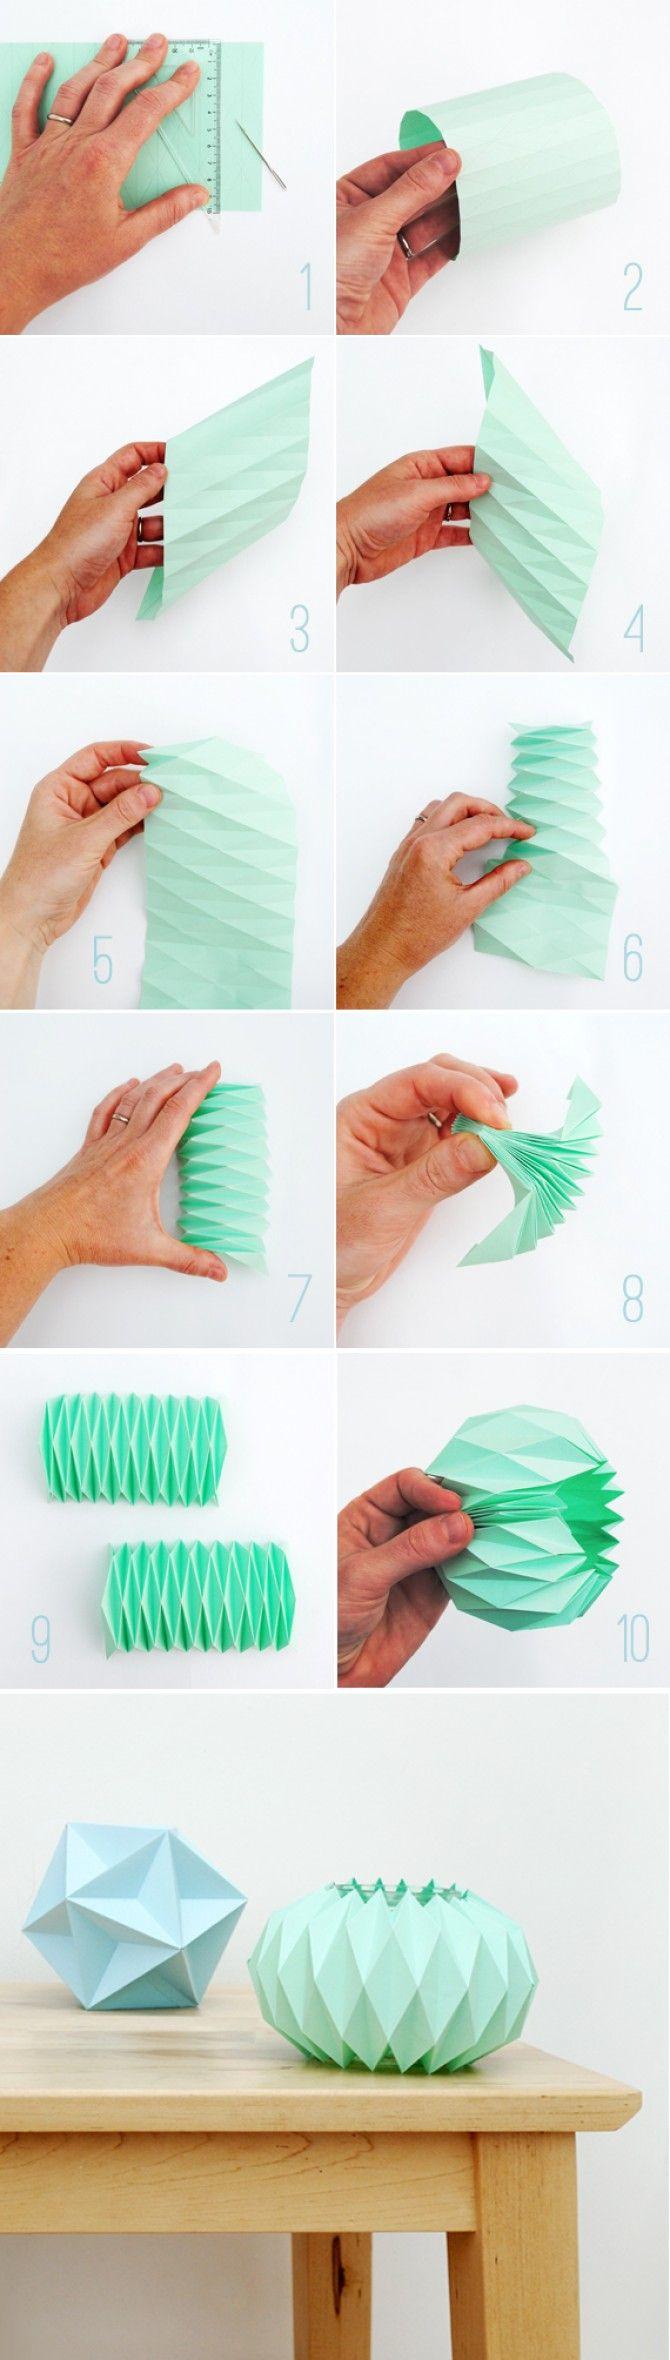 19 best origami diy images on pinterest diy origami origami and paper tuto pour cet accordon en papier diy accordion paper folding candle holder diy crafts craft ideas easy crafts diy ideas diy idea diy home easy diy for solutioingenieria Gallery